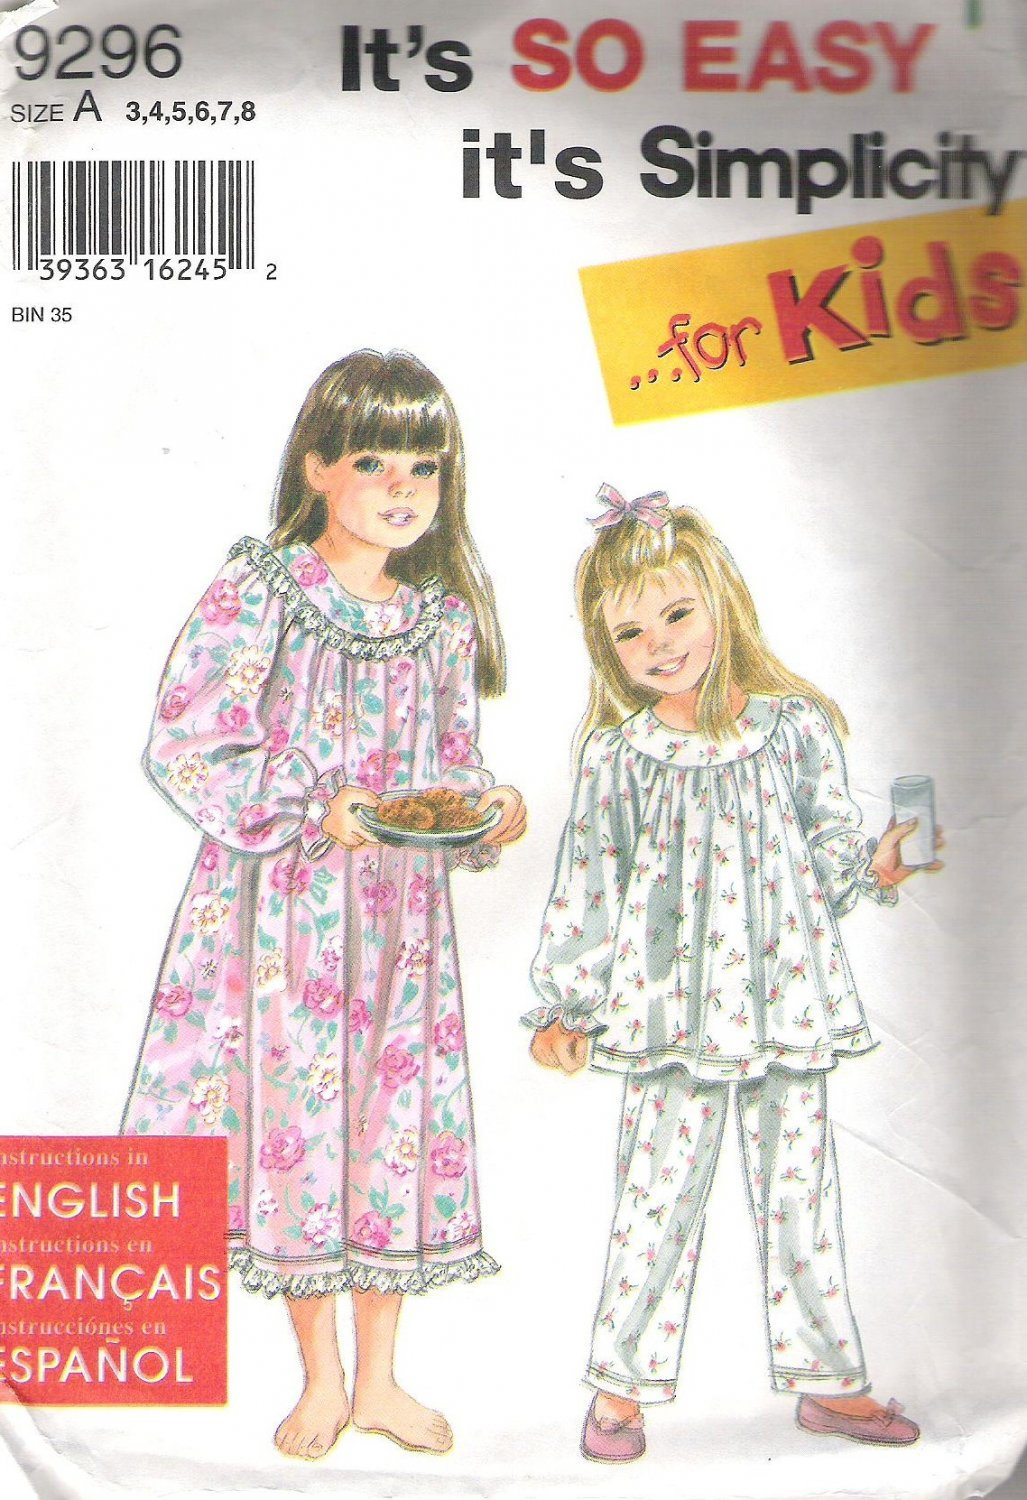 1996 Simplicity 9296  Pattern Girls Nightgown and Pajamas Size 3-8 Partial Cut to 8